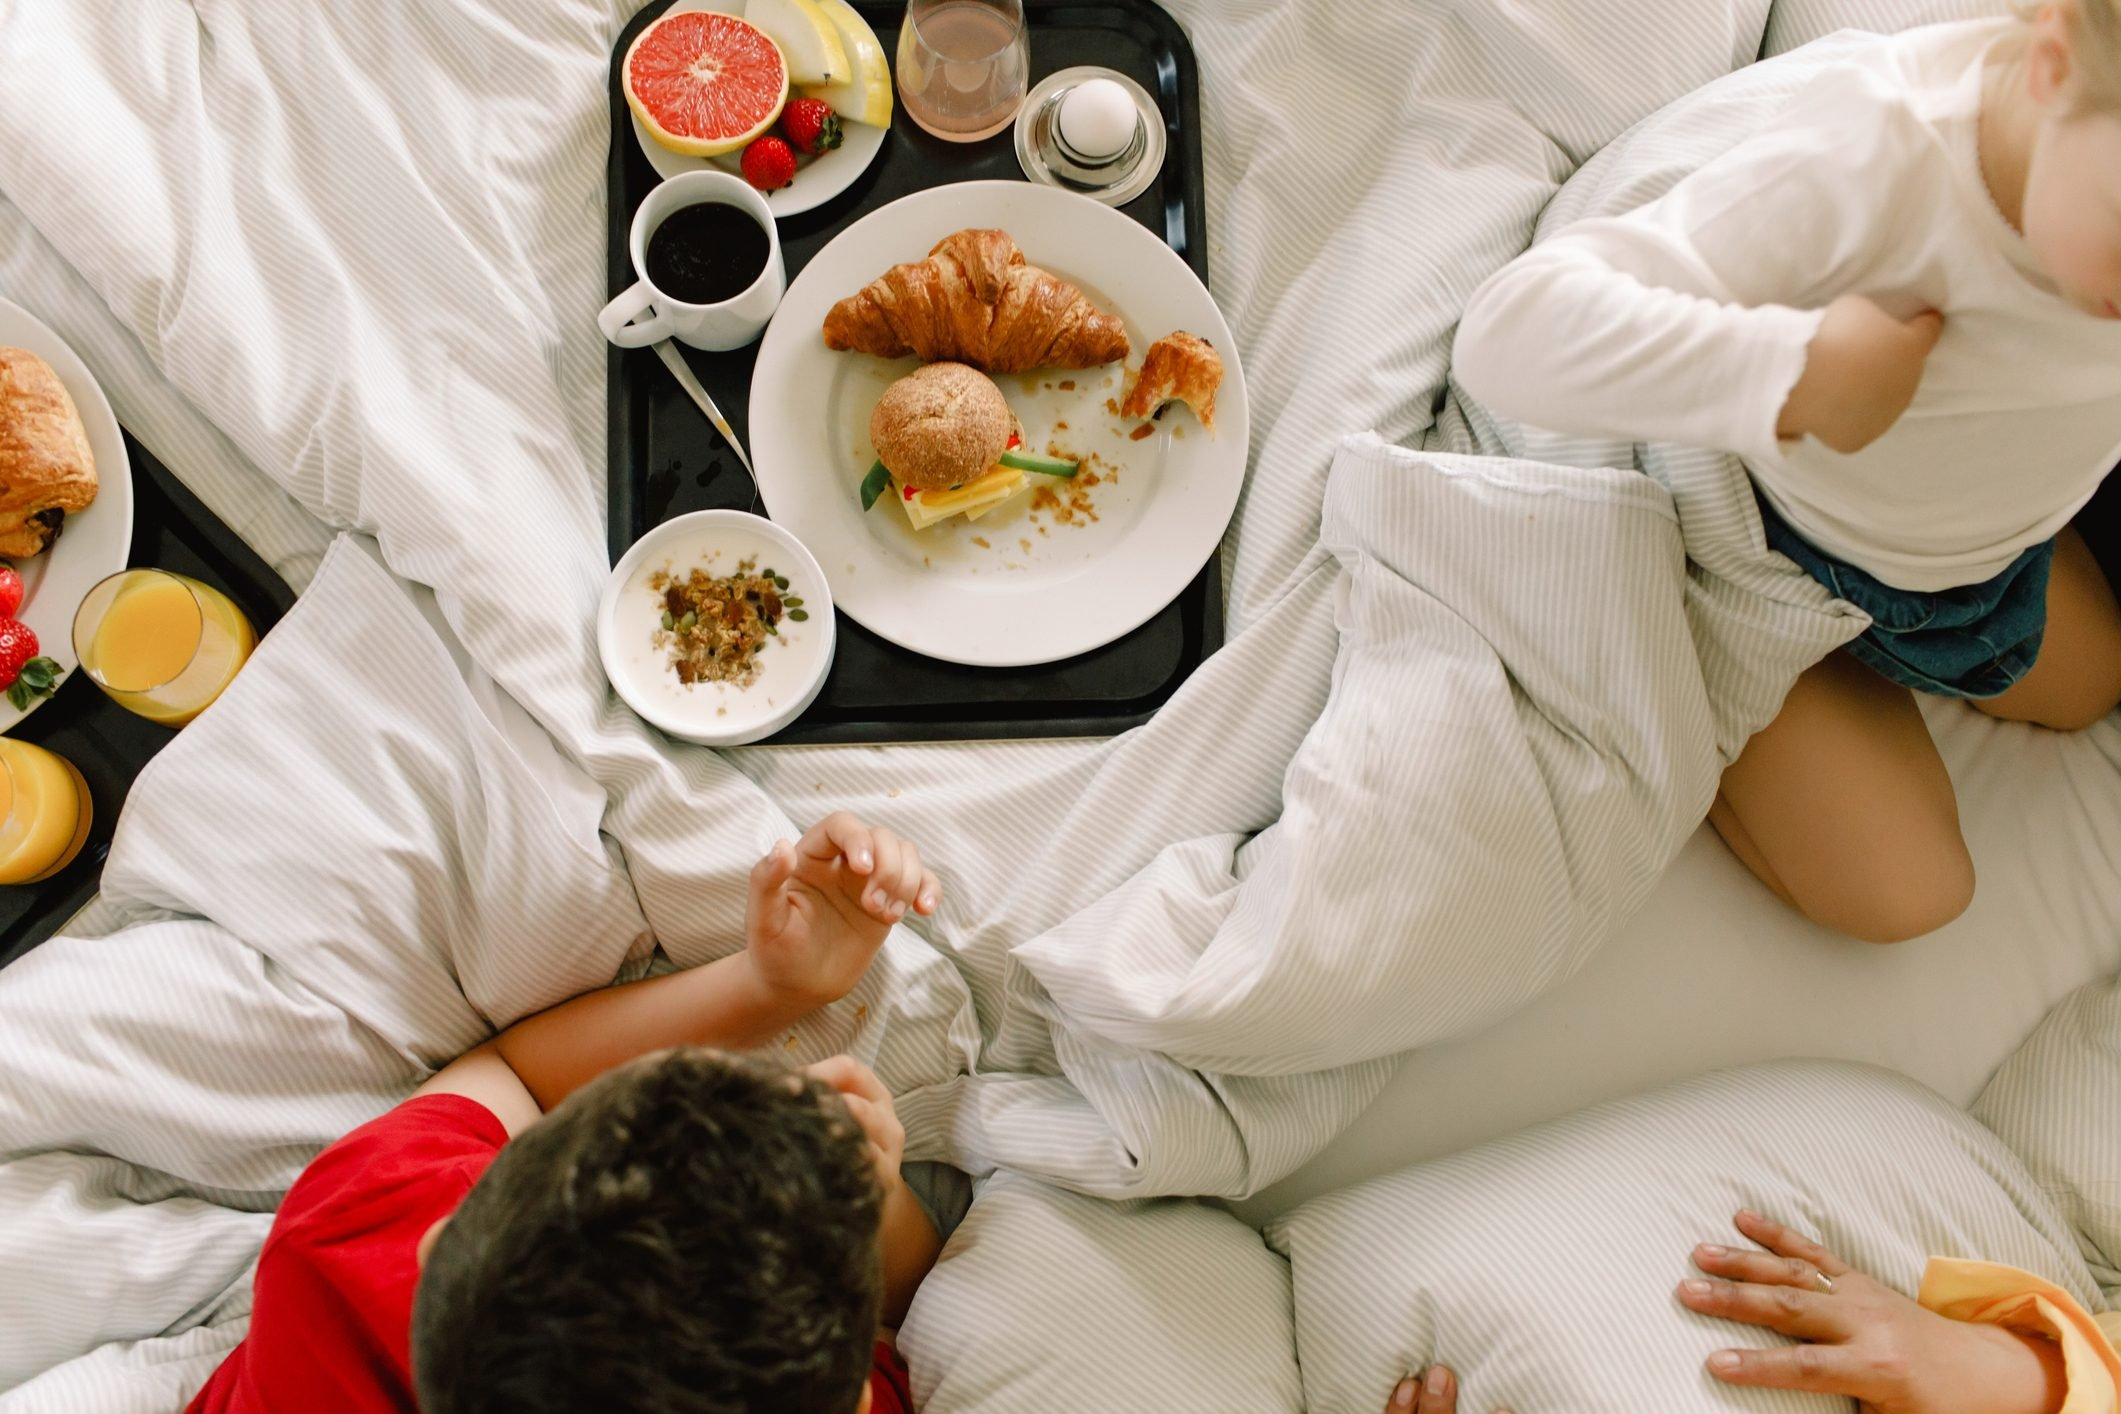 Directly above shot of family having breakfast on bed in hotel